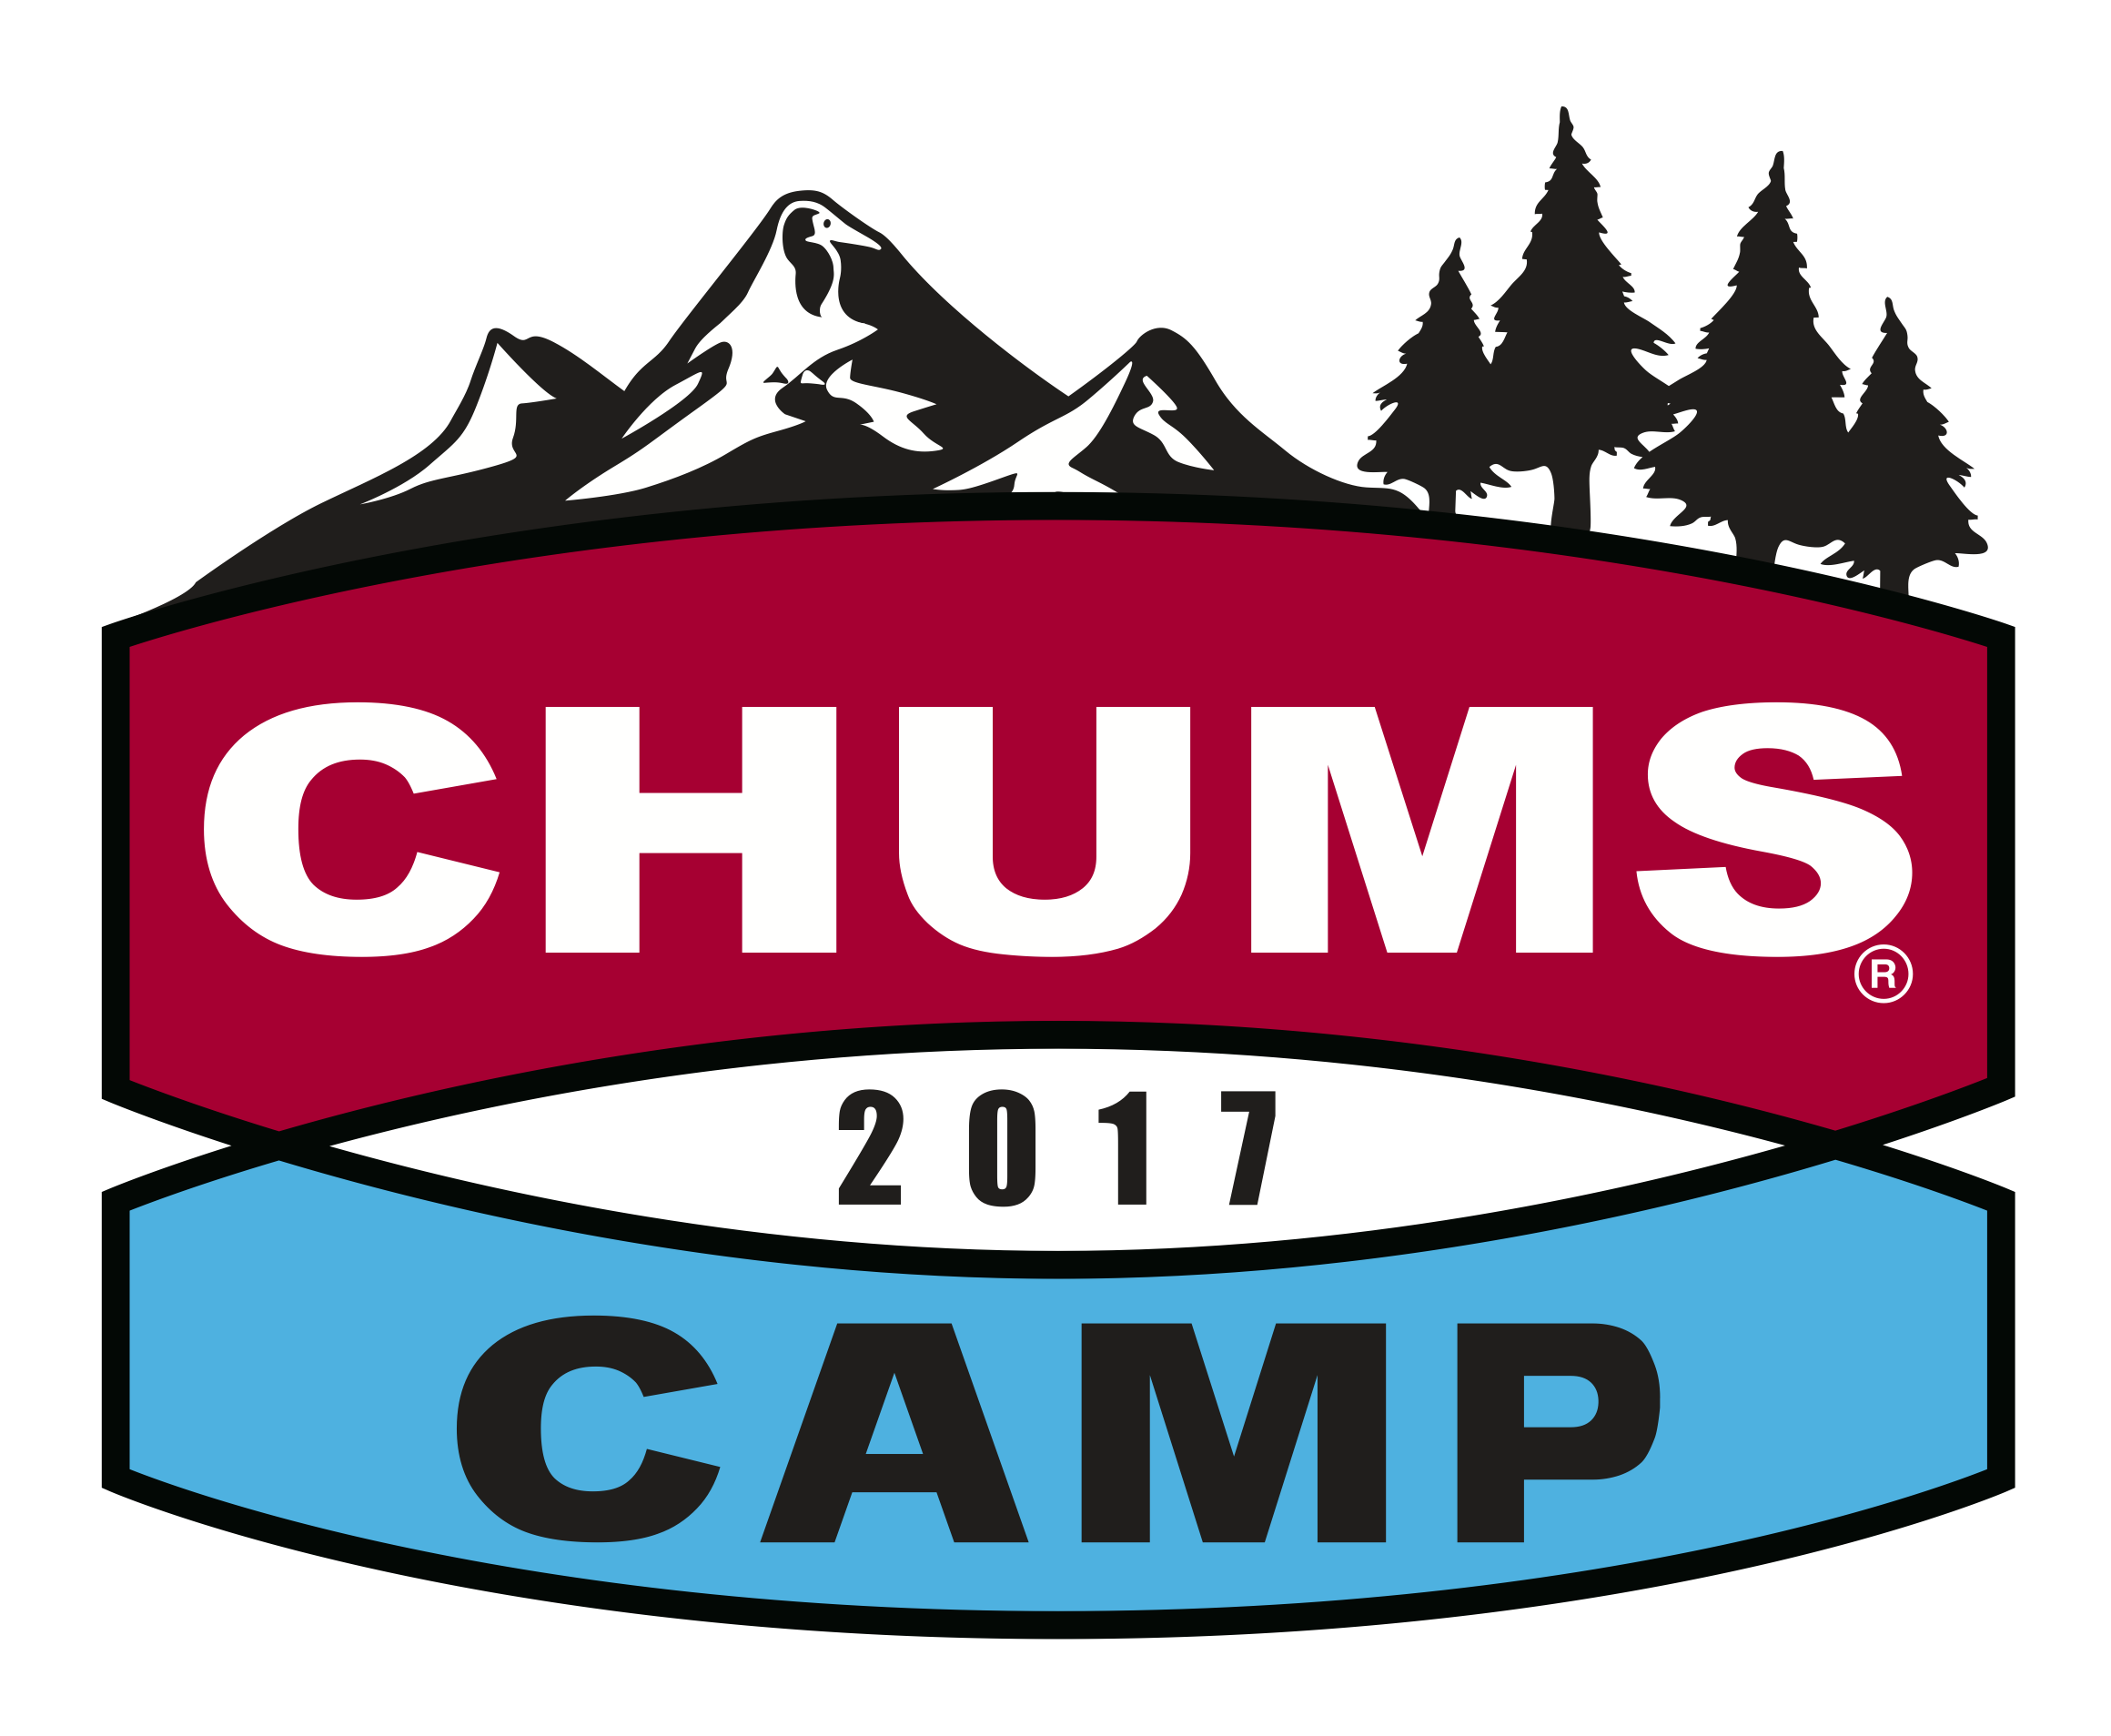 CHUMS CAMP 2017 LOGO